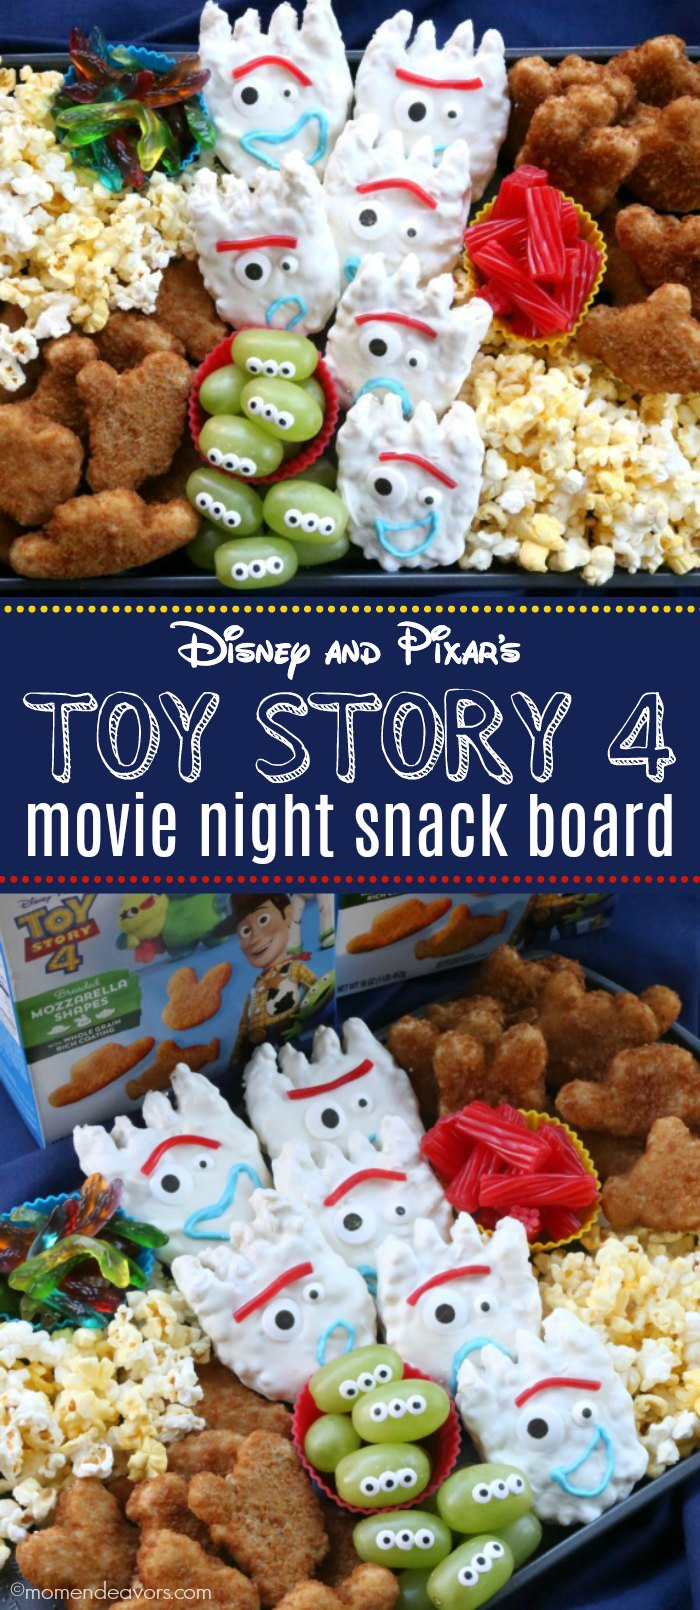 Disney and Pixar's Toy Story 4 Movie Night Snack Board